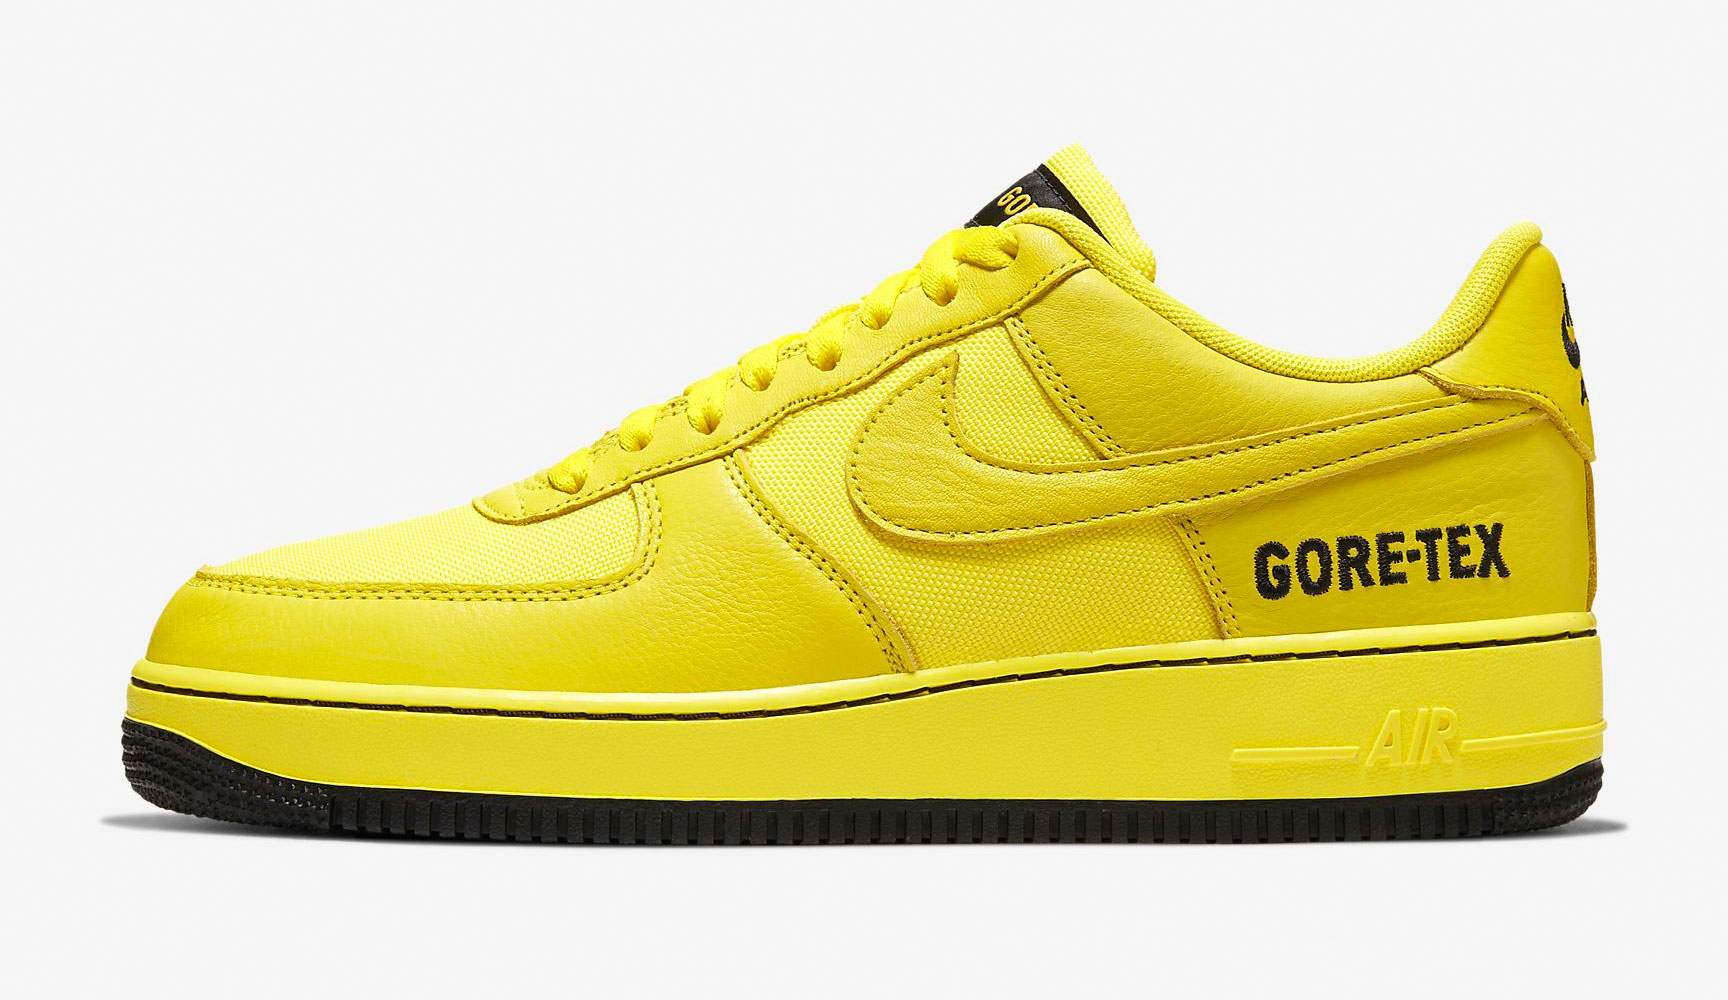 nike-air-force-1-goretex-yellow-release-date